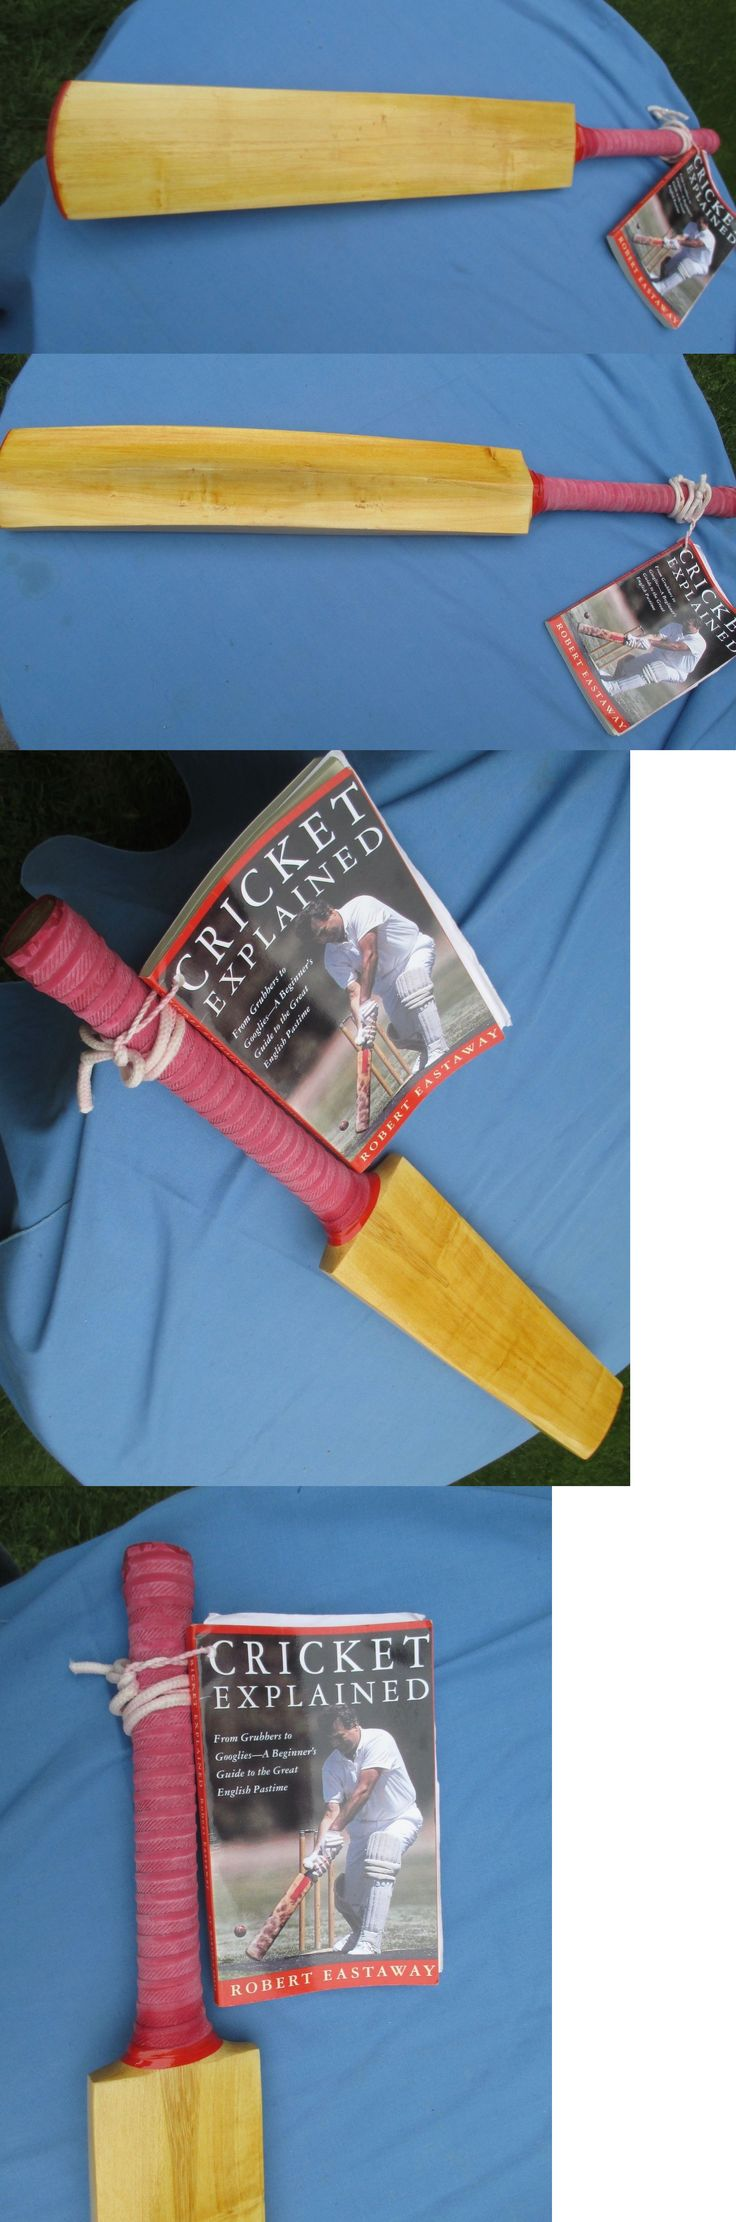 Cricket 2906: Wood Cricket Bat And Cricket Book. Never Used. 34 Long -> BUY IT NOW ONLY: $60 on eBay!